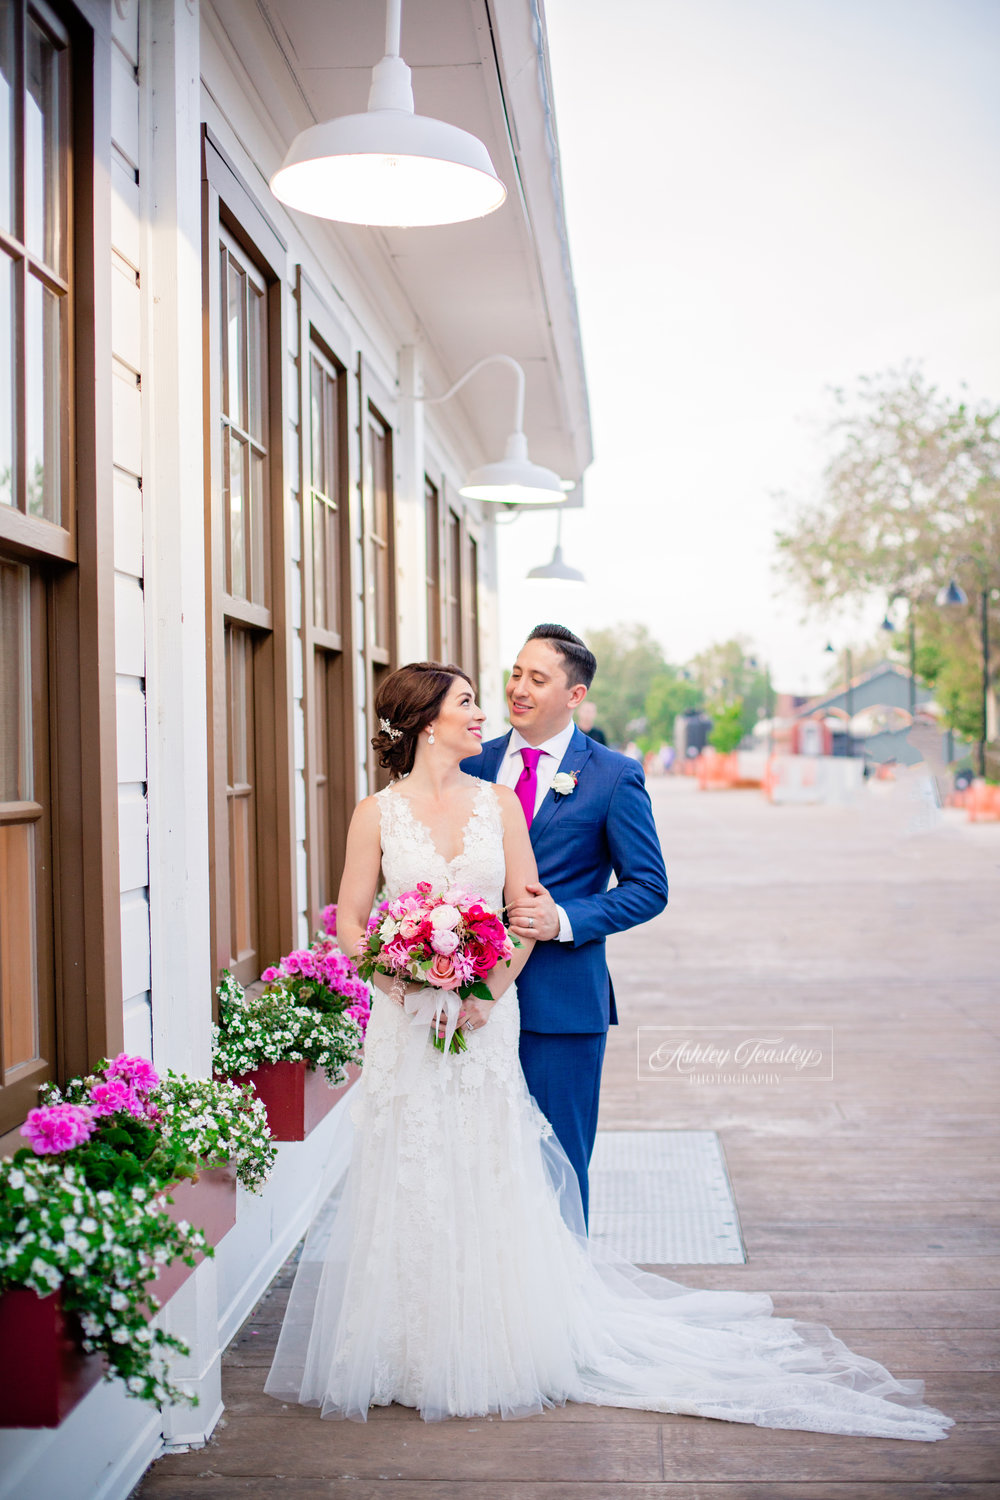 Tarrah & Francisco - The Kimpton Sawyer Hotel - The Firehouse Old Sac - Sacramento Wedding Photographer - Ashley Teasley Photography (69 of 118).jpg